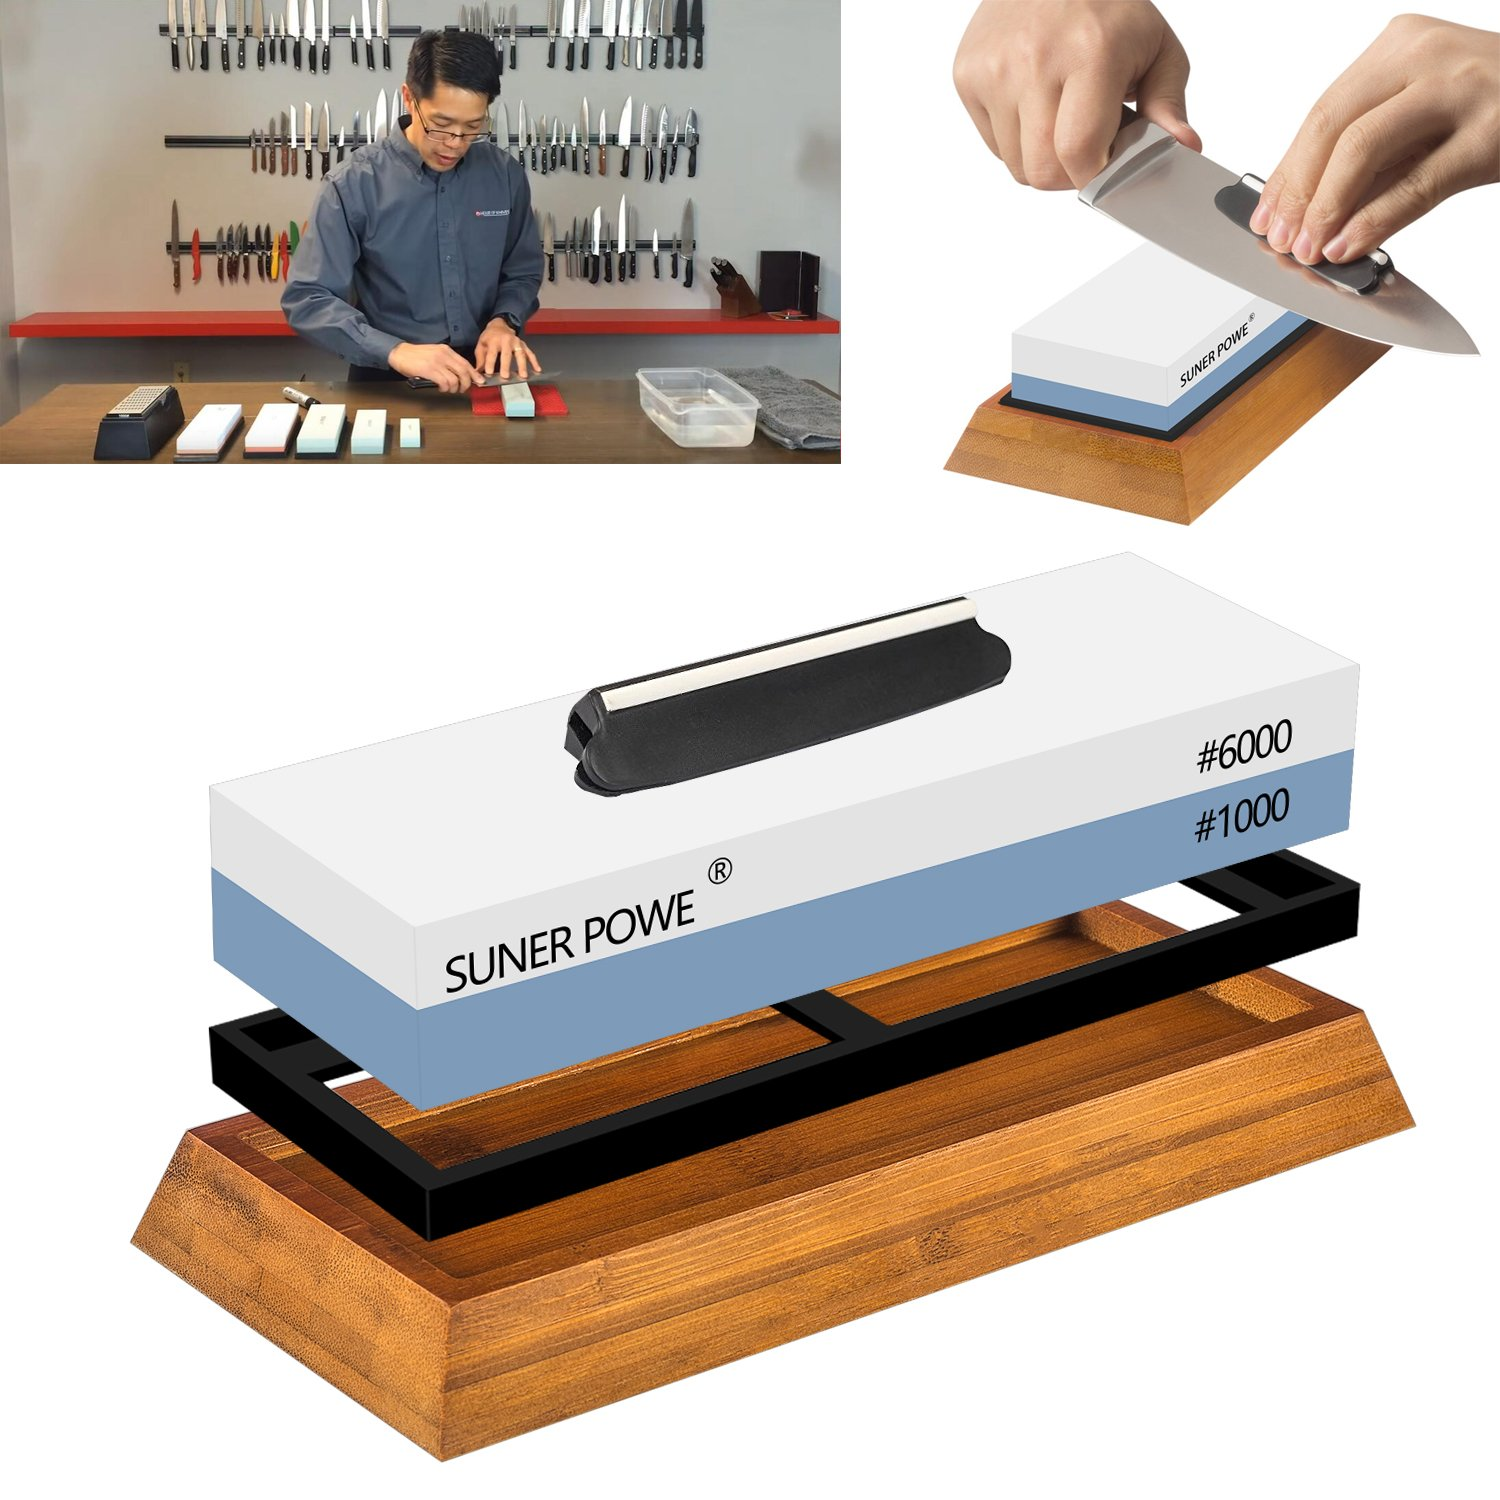 SUNER POWER KSS01 Professional Dual 1000/6000 Japanese Grit Whetstone-Knife Sharpening Stone Kit Included Non-Slip Bamboo Base and Angle Guide-Perfe, Large, White-Blue